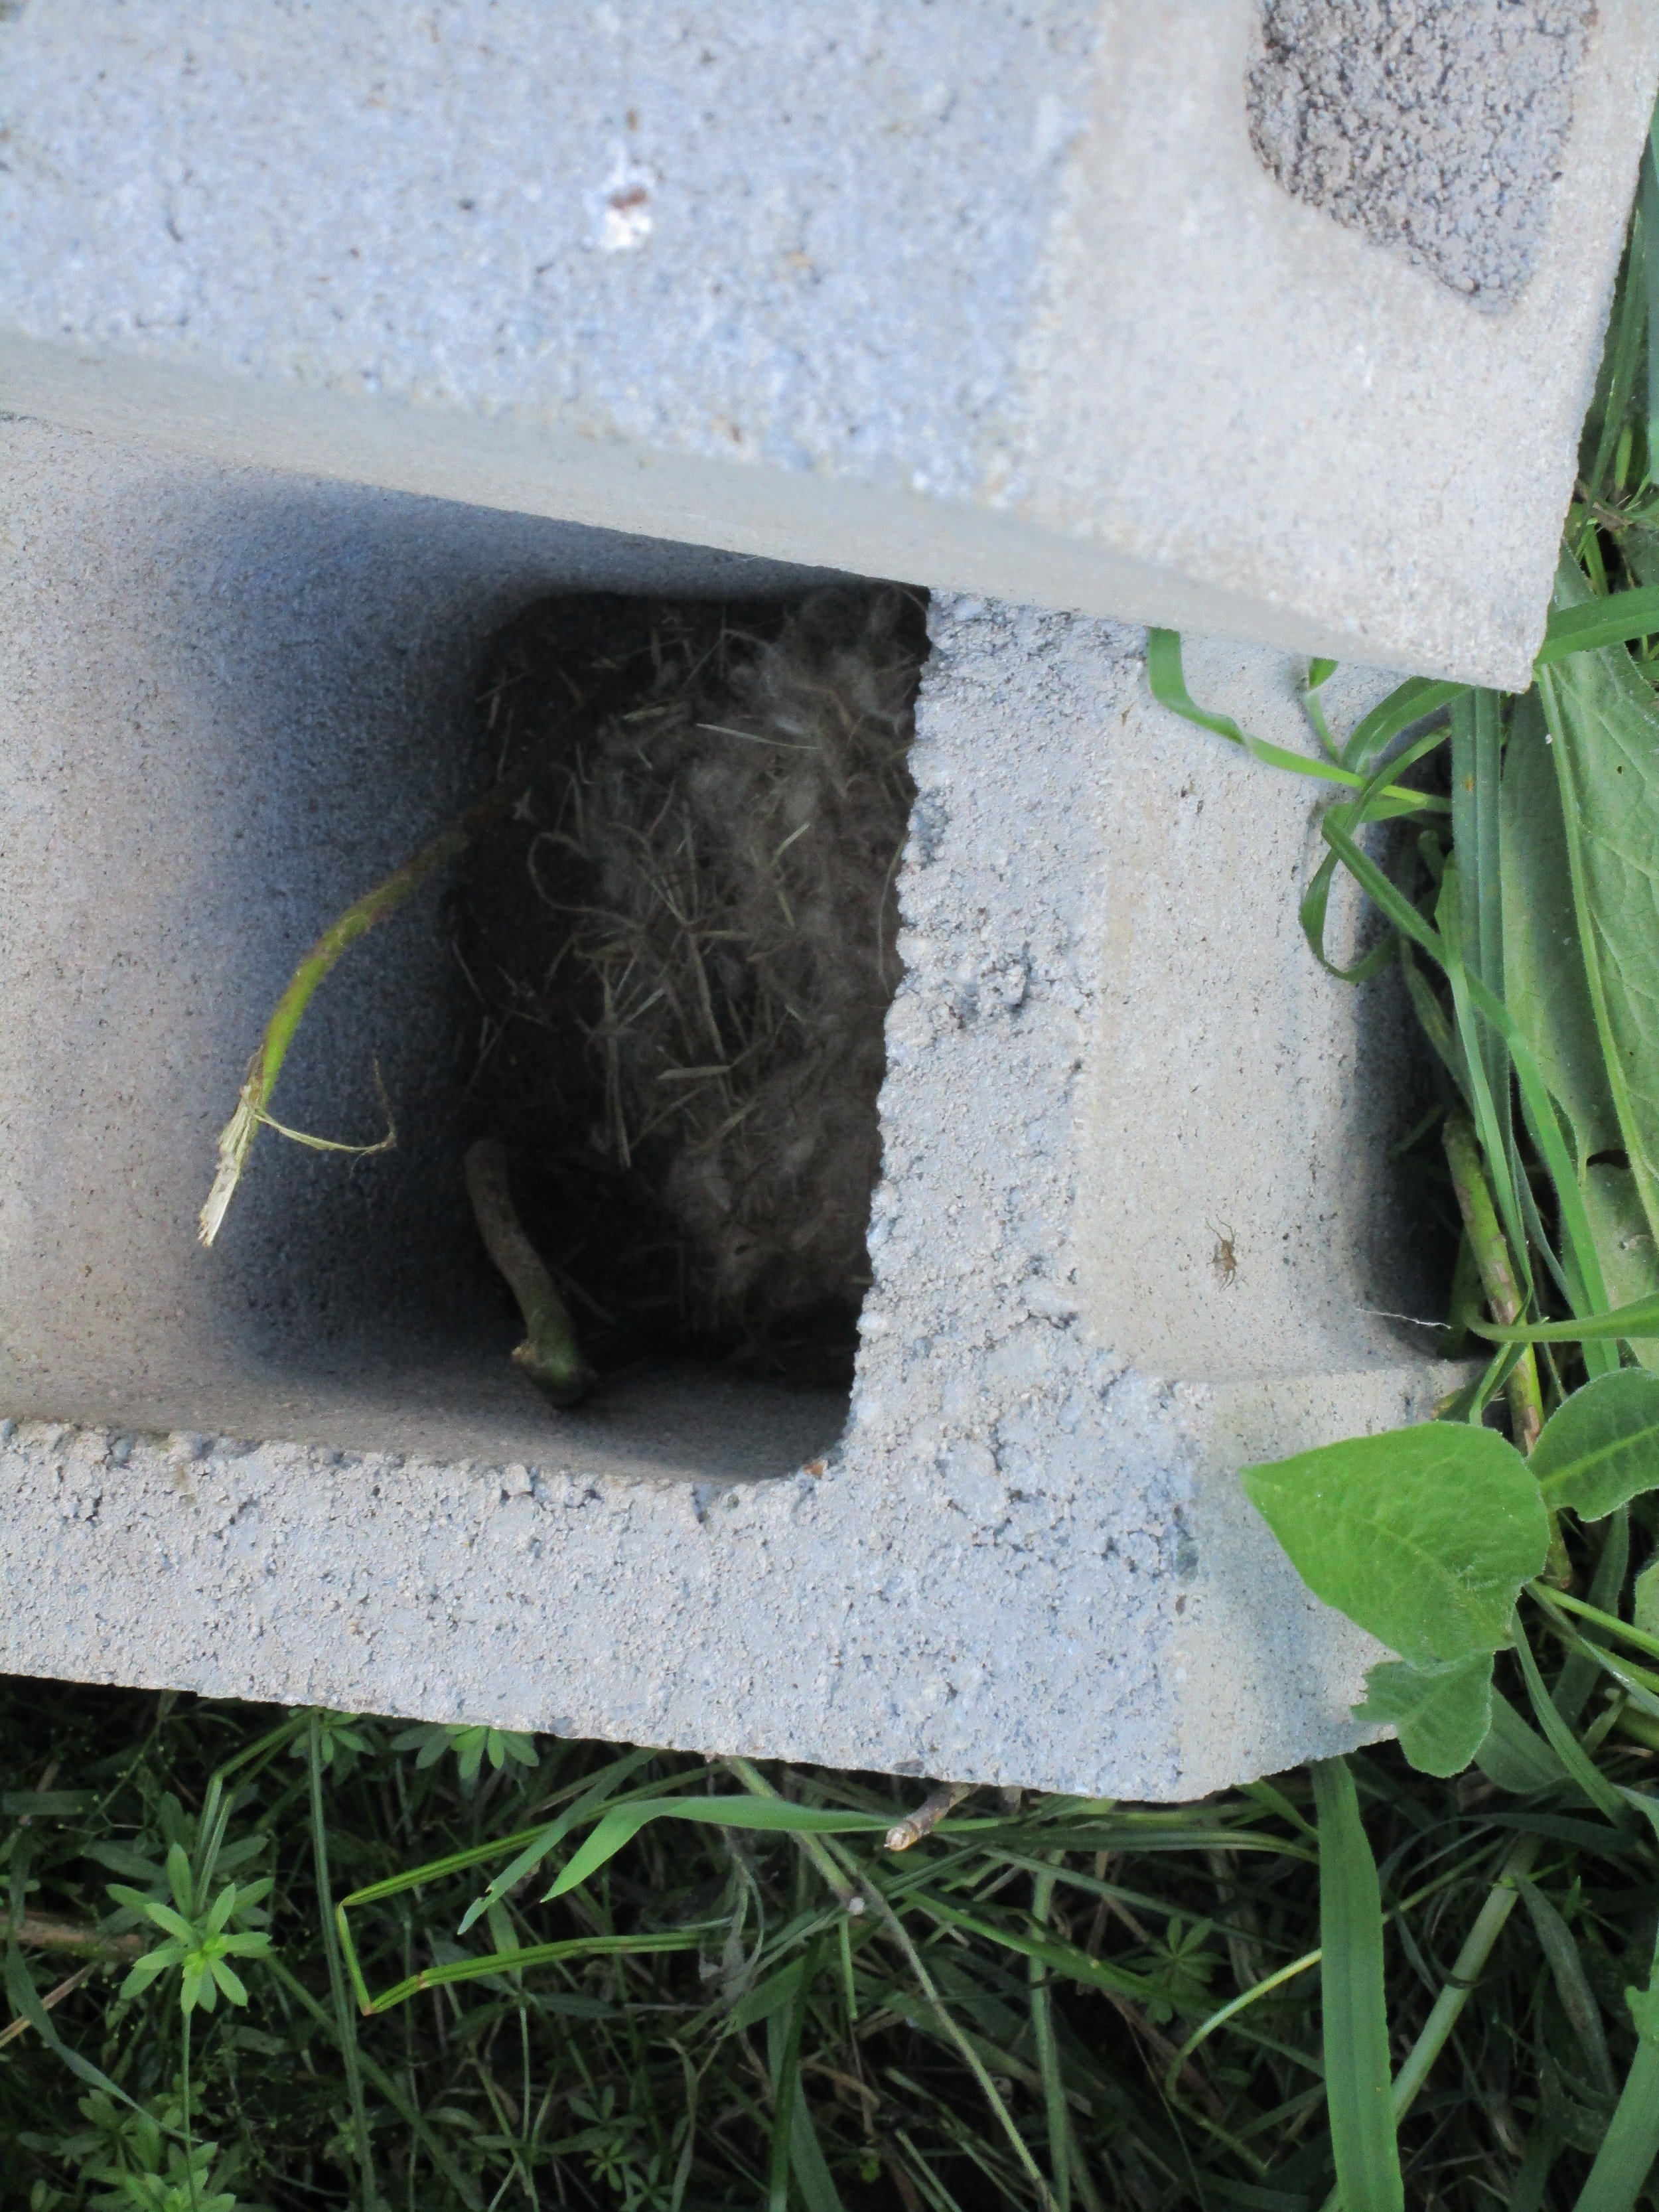 Mouse nest in the cinder blocks Hive 5 used to rest on.